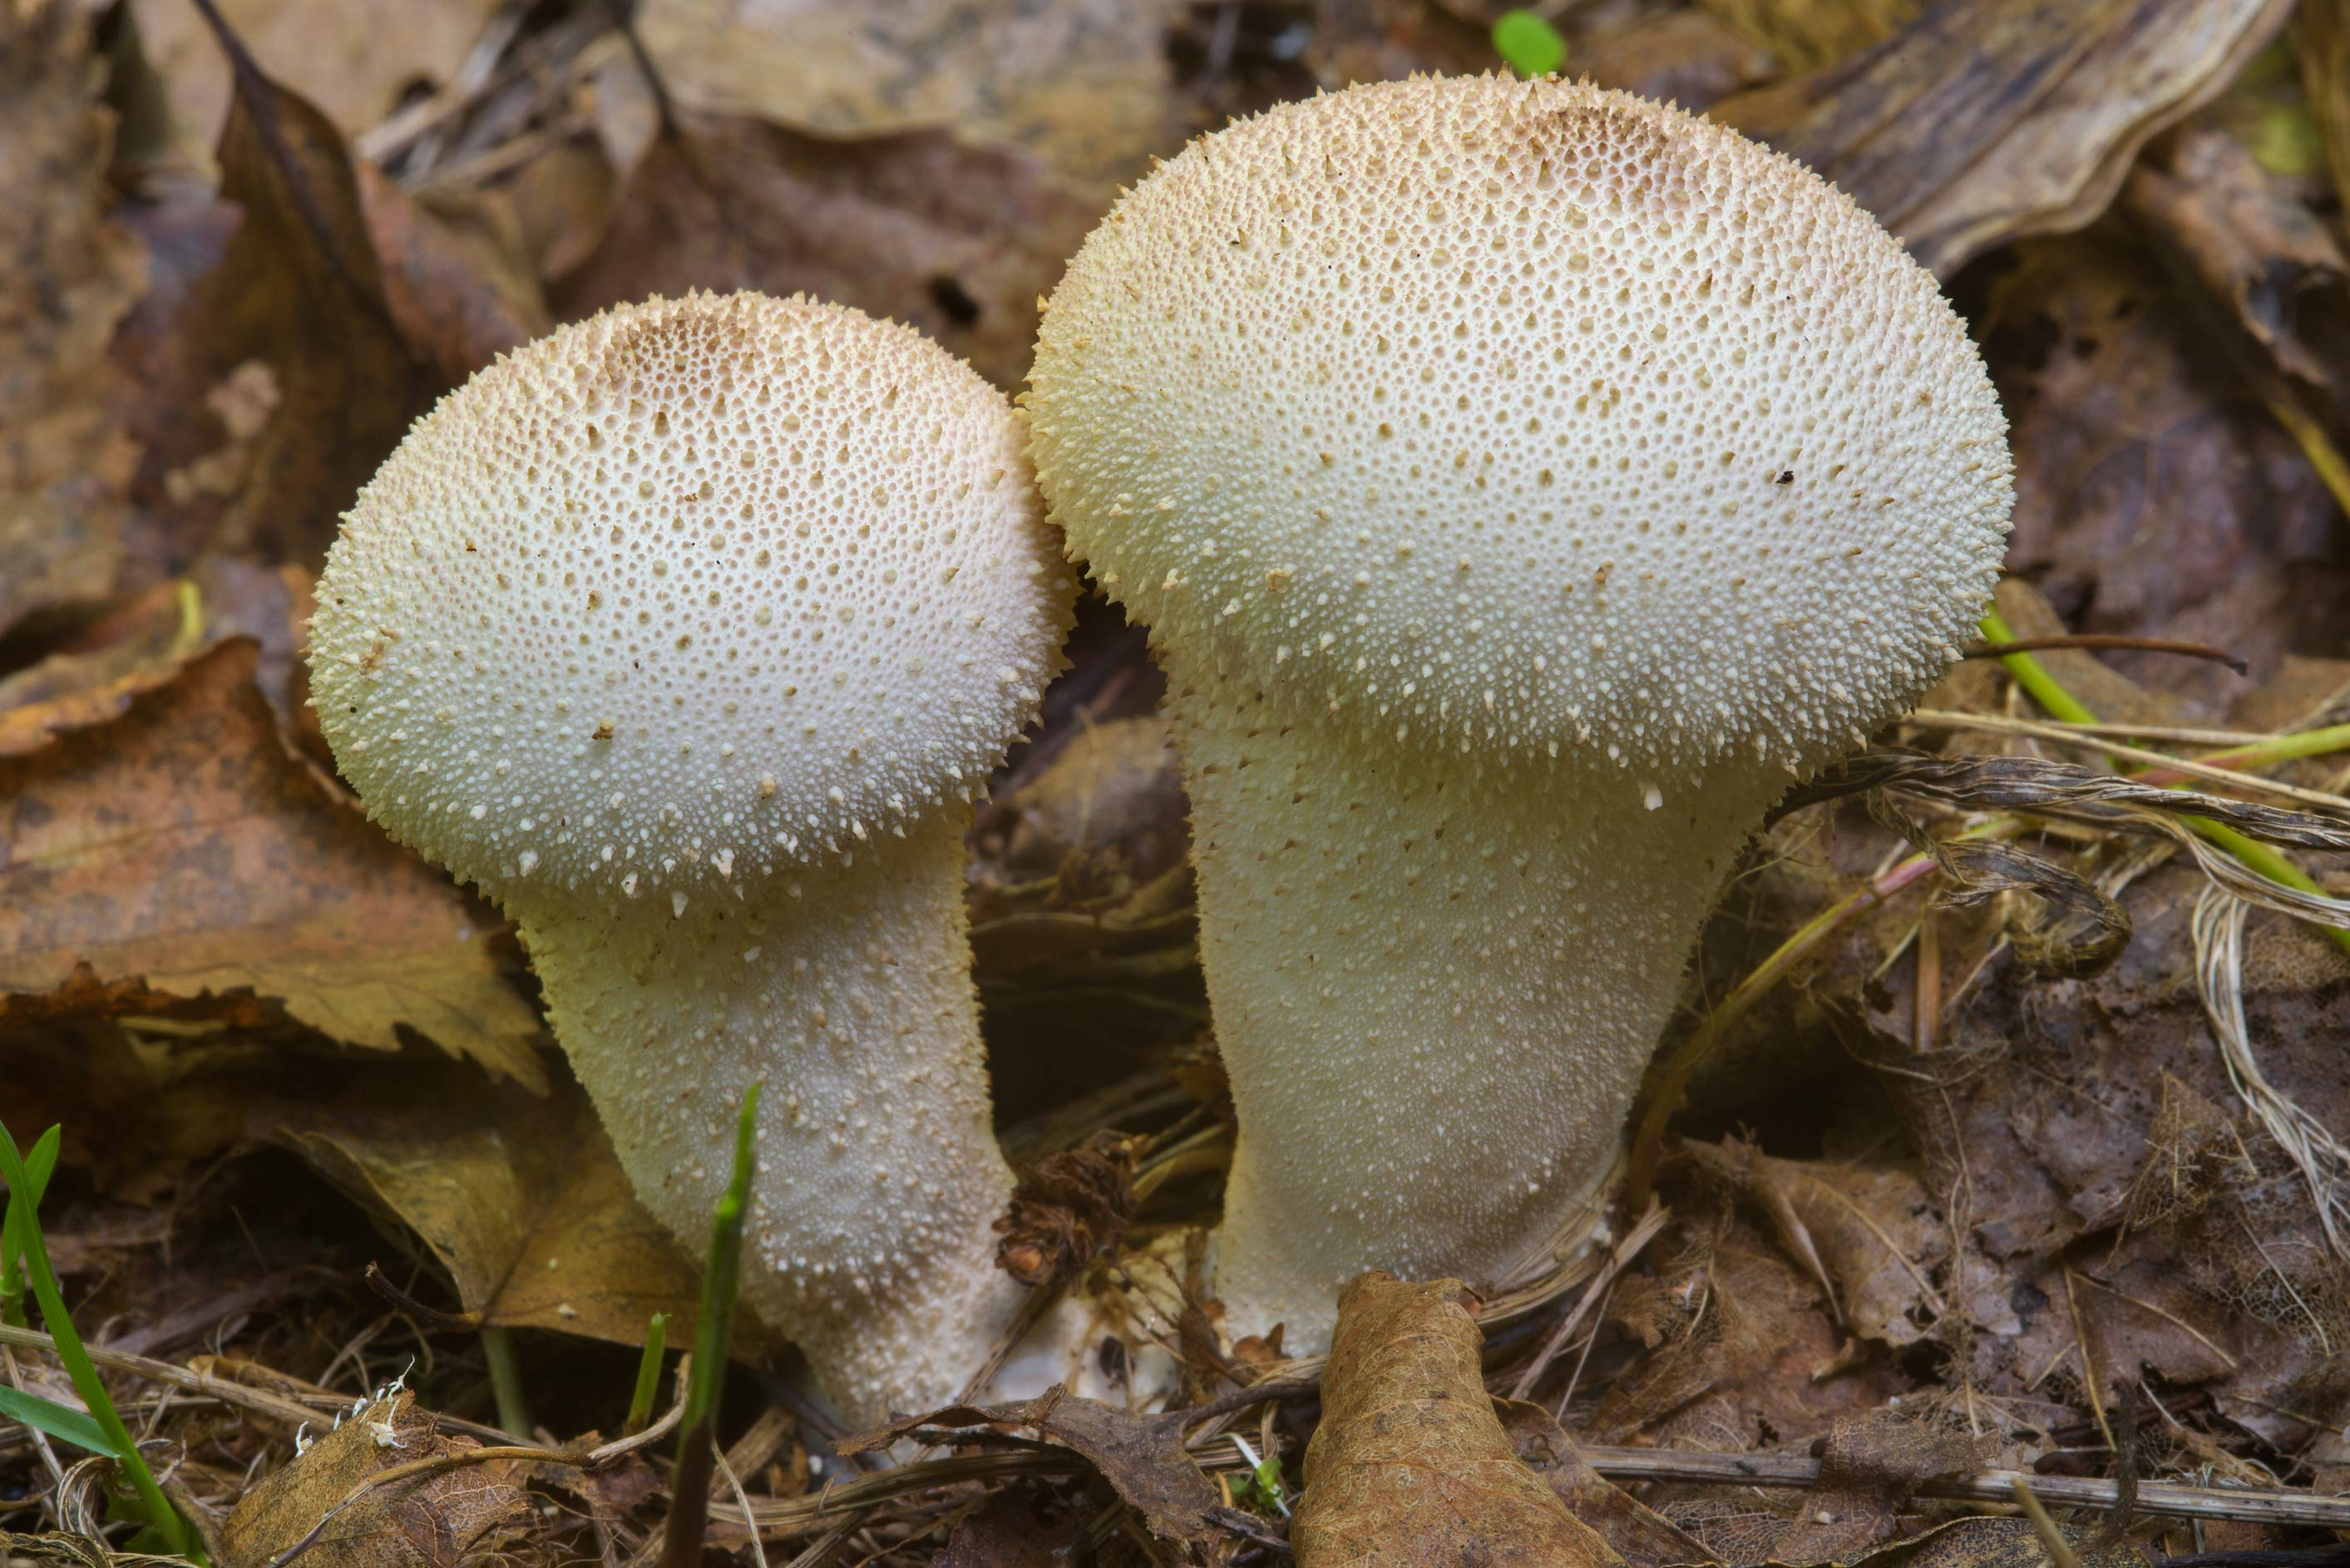 Spiked puffball mushrooms (Lycoperdon perlatum...Nos, west from St.Petersburg. Russia